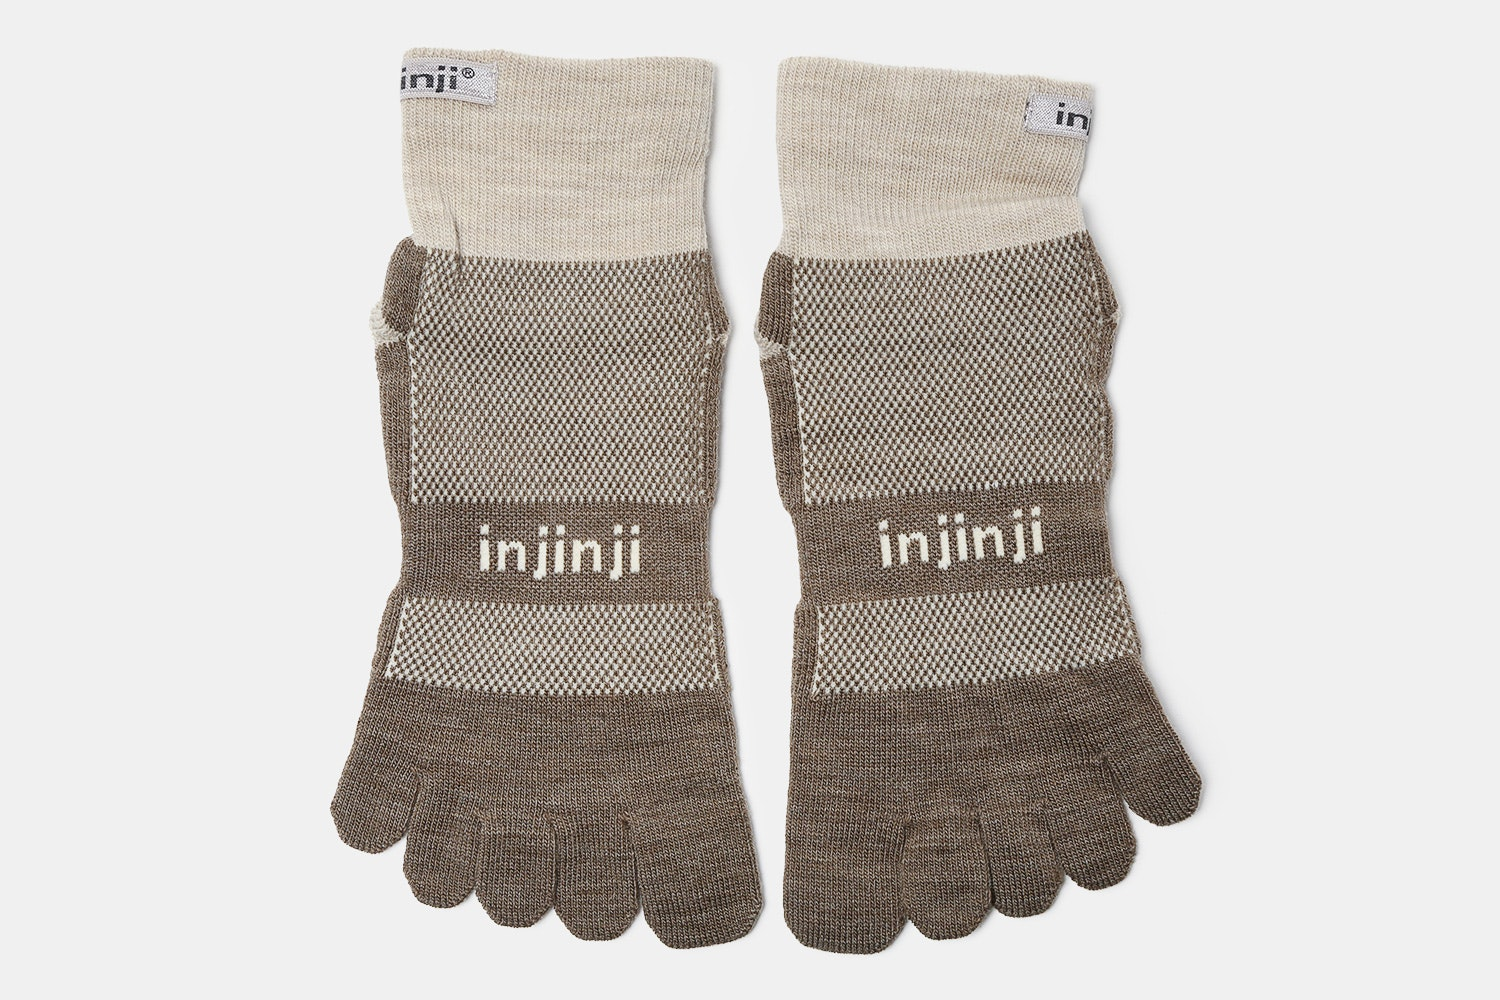 Injinji Outdoor Midweight Socks (3-Pack)